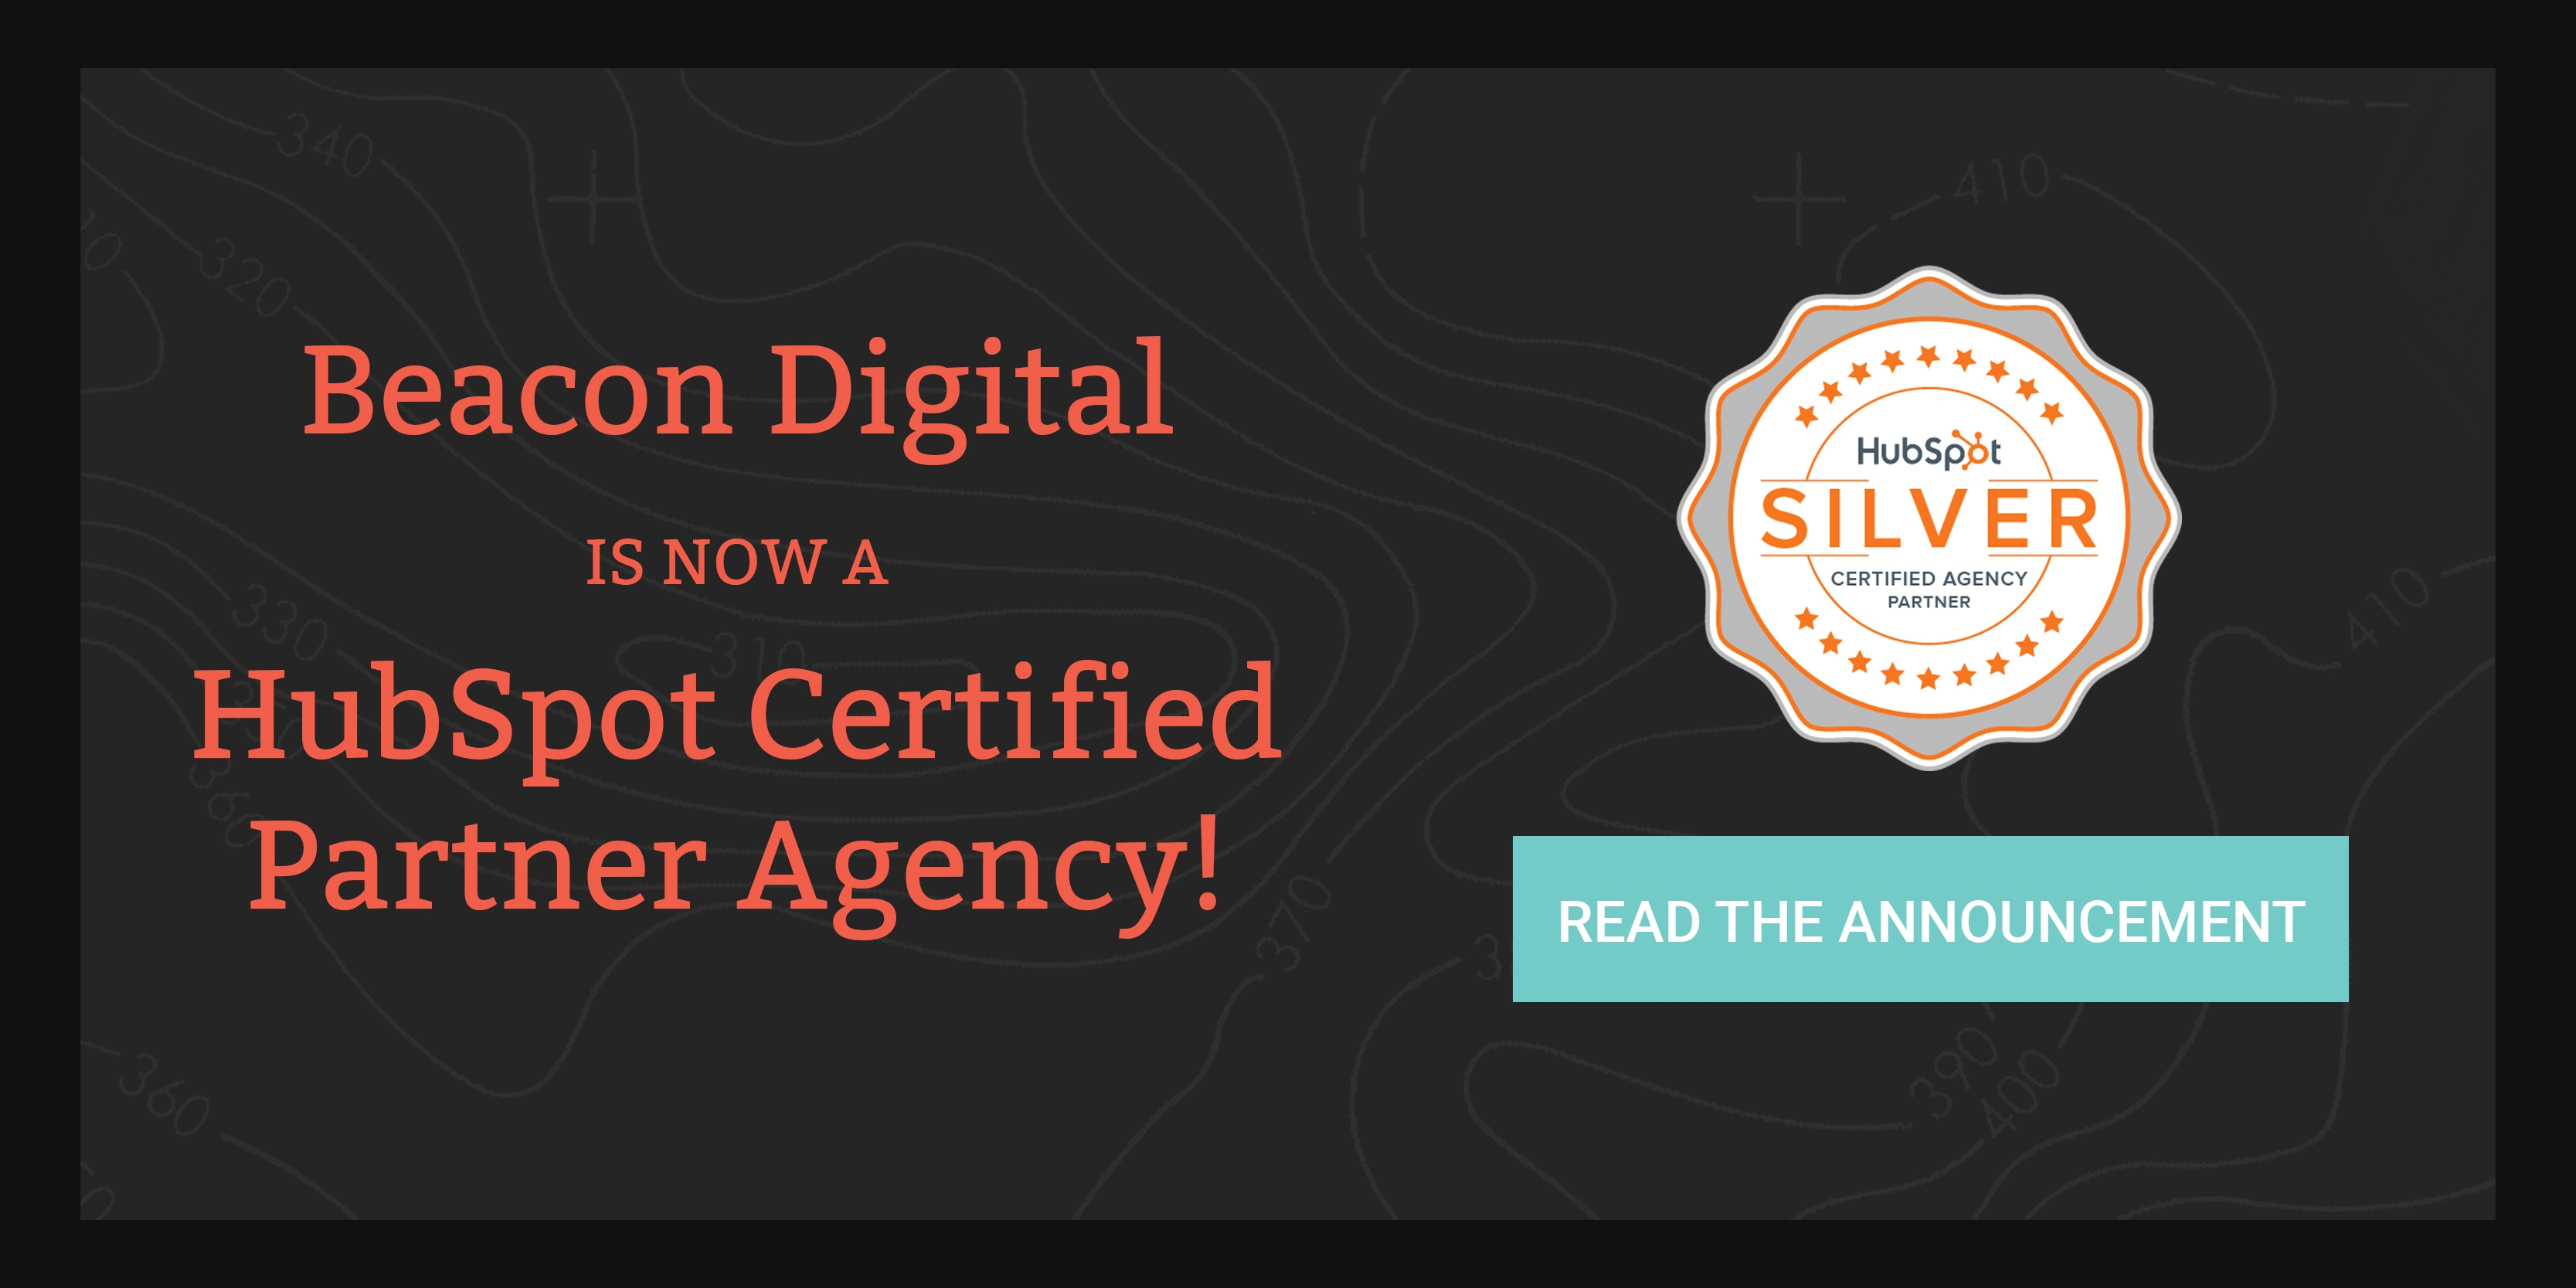 Beacon Digital Marketing Becomes a HubSpot Silver Partner Agency